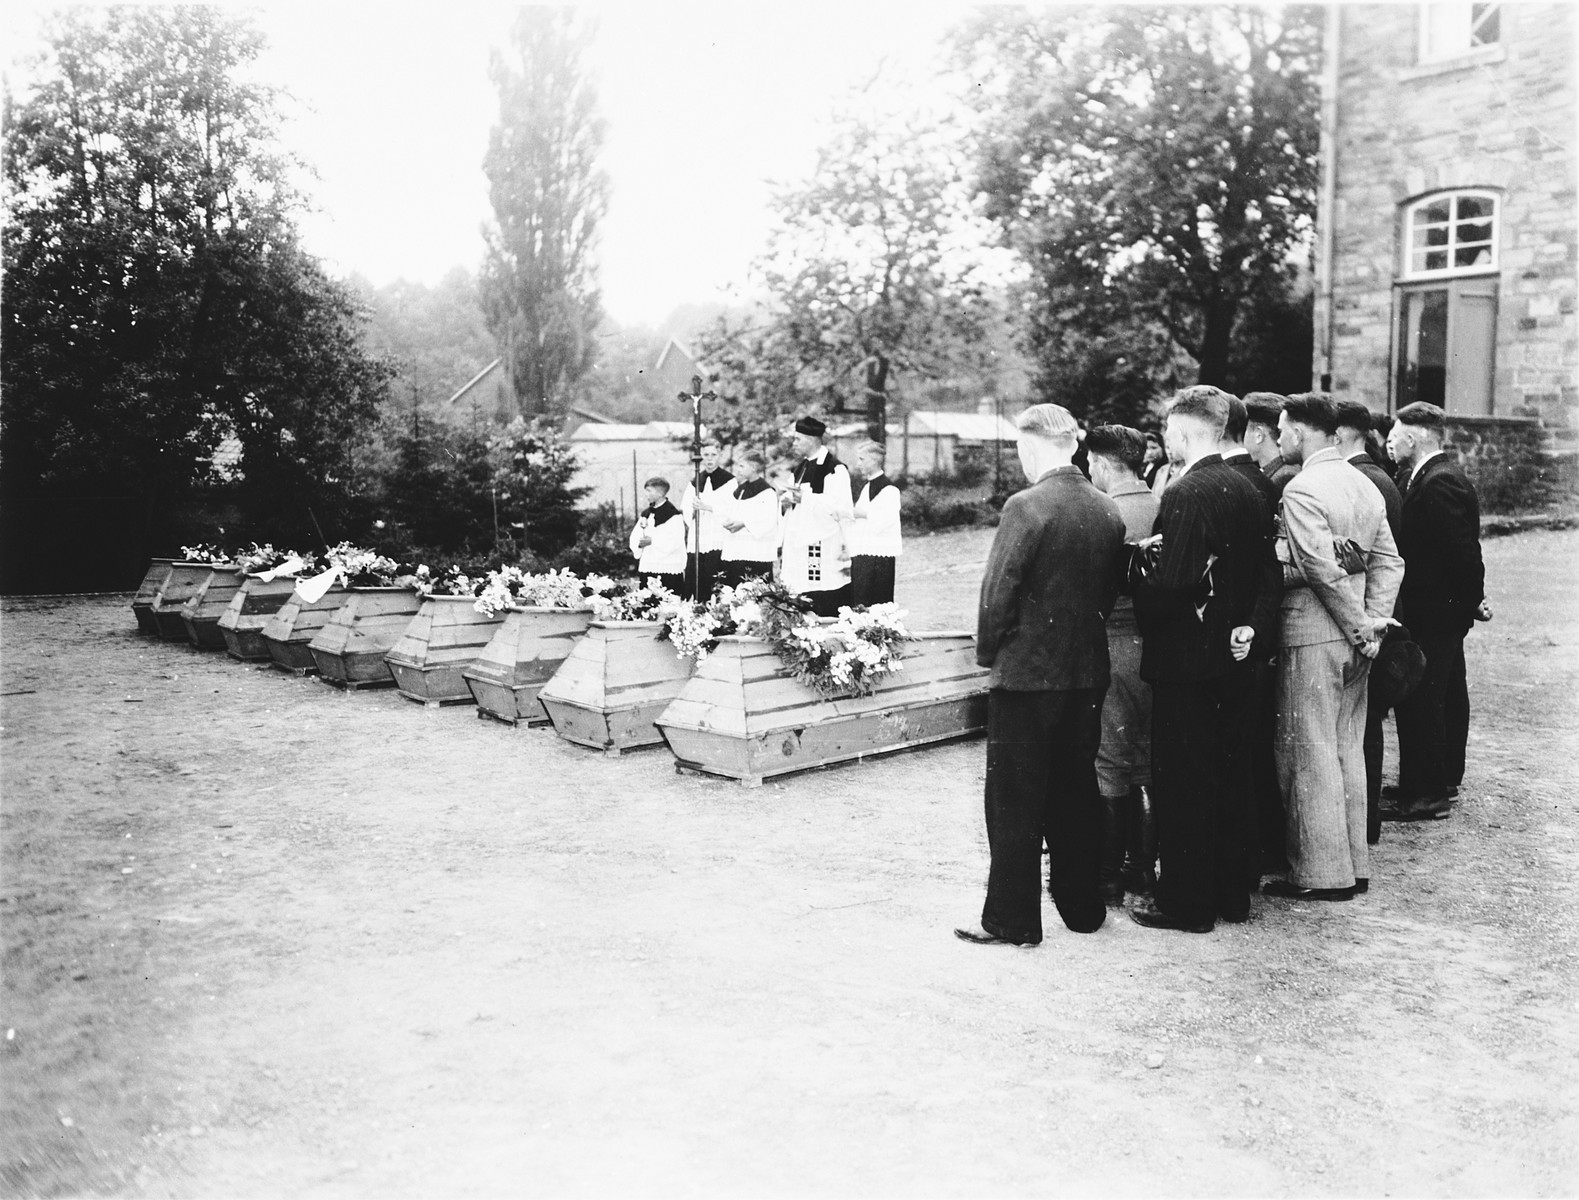 German civilians from Lindlar attend funeral services for the 10 Russians exhumed from a mass grave near the town.    The victims were shot on April 4, 1945, by members of the Volkssturm (civilian militia) in retaliation for the killing of the local group leader (SS, SA?) in Overath.